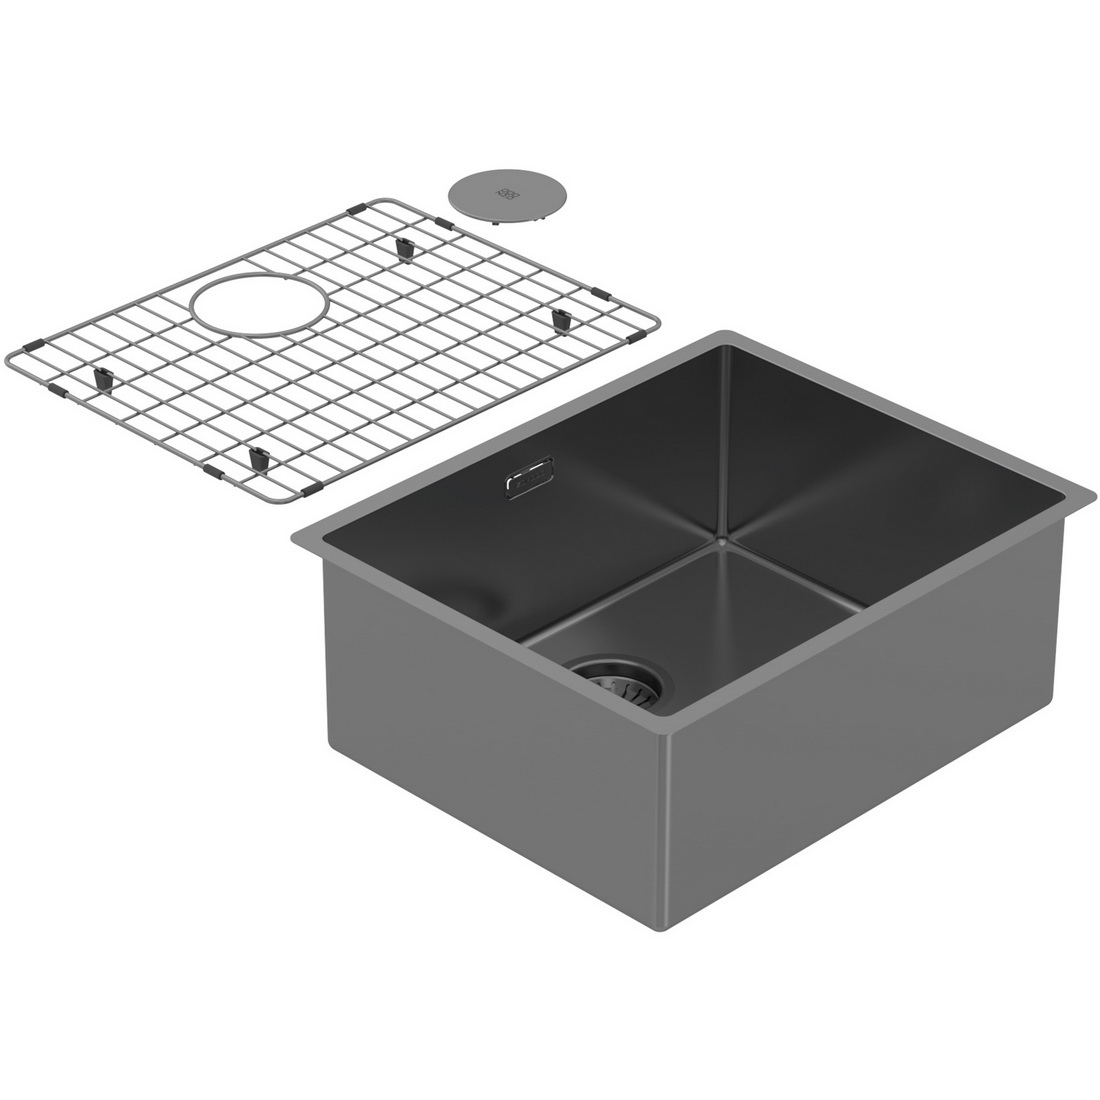 540 x 440 x 210mm Single Large Bowl Undermount Kitchen Sink Cayman Sonic Grey PearlArc Finish